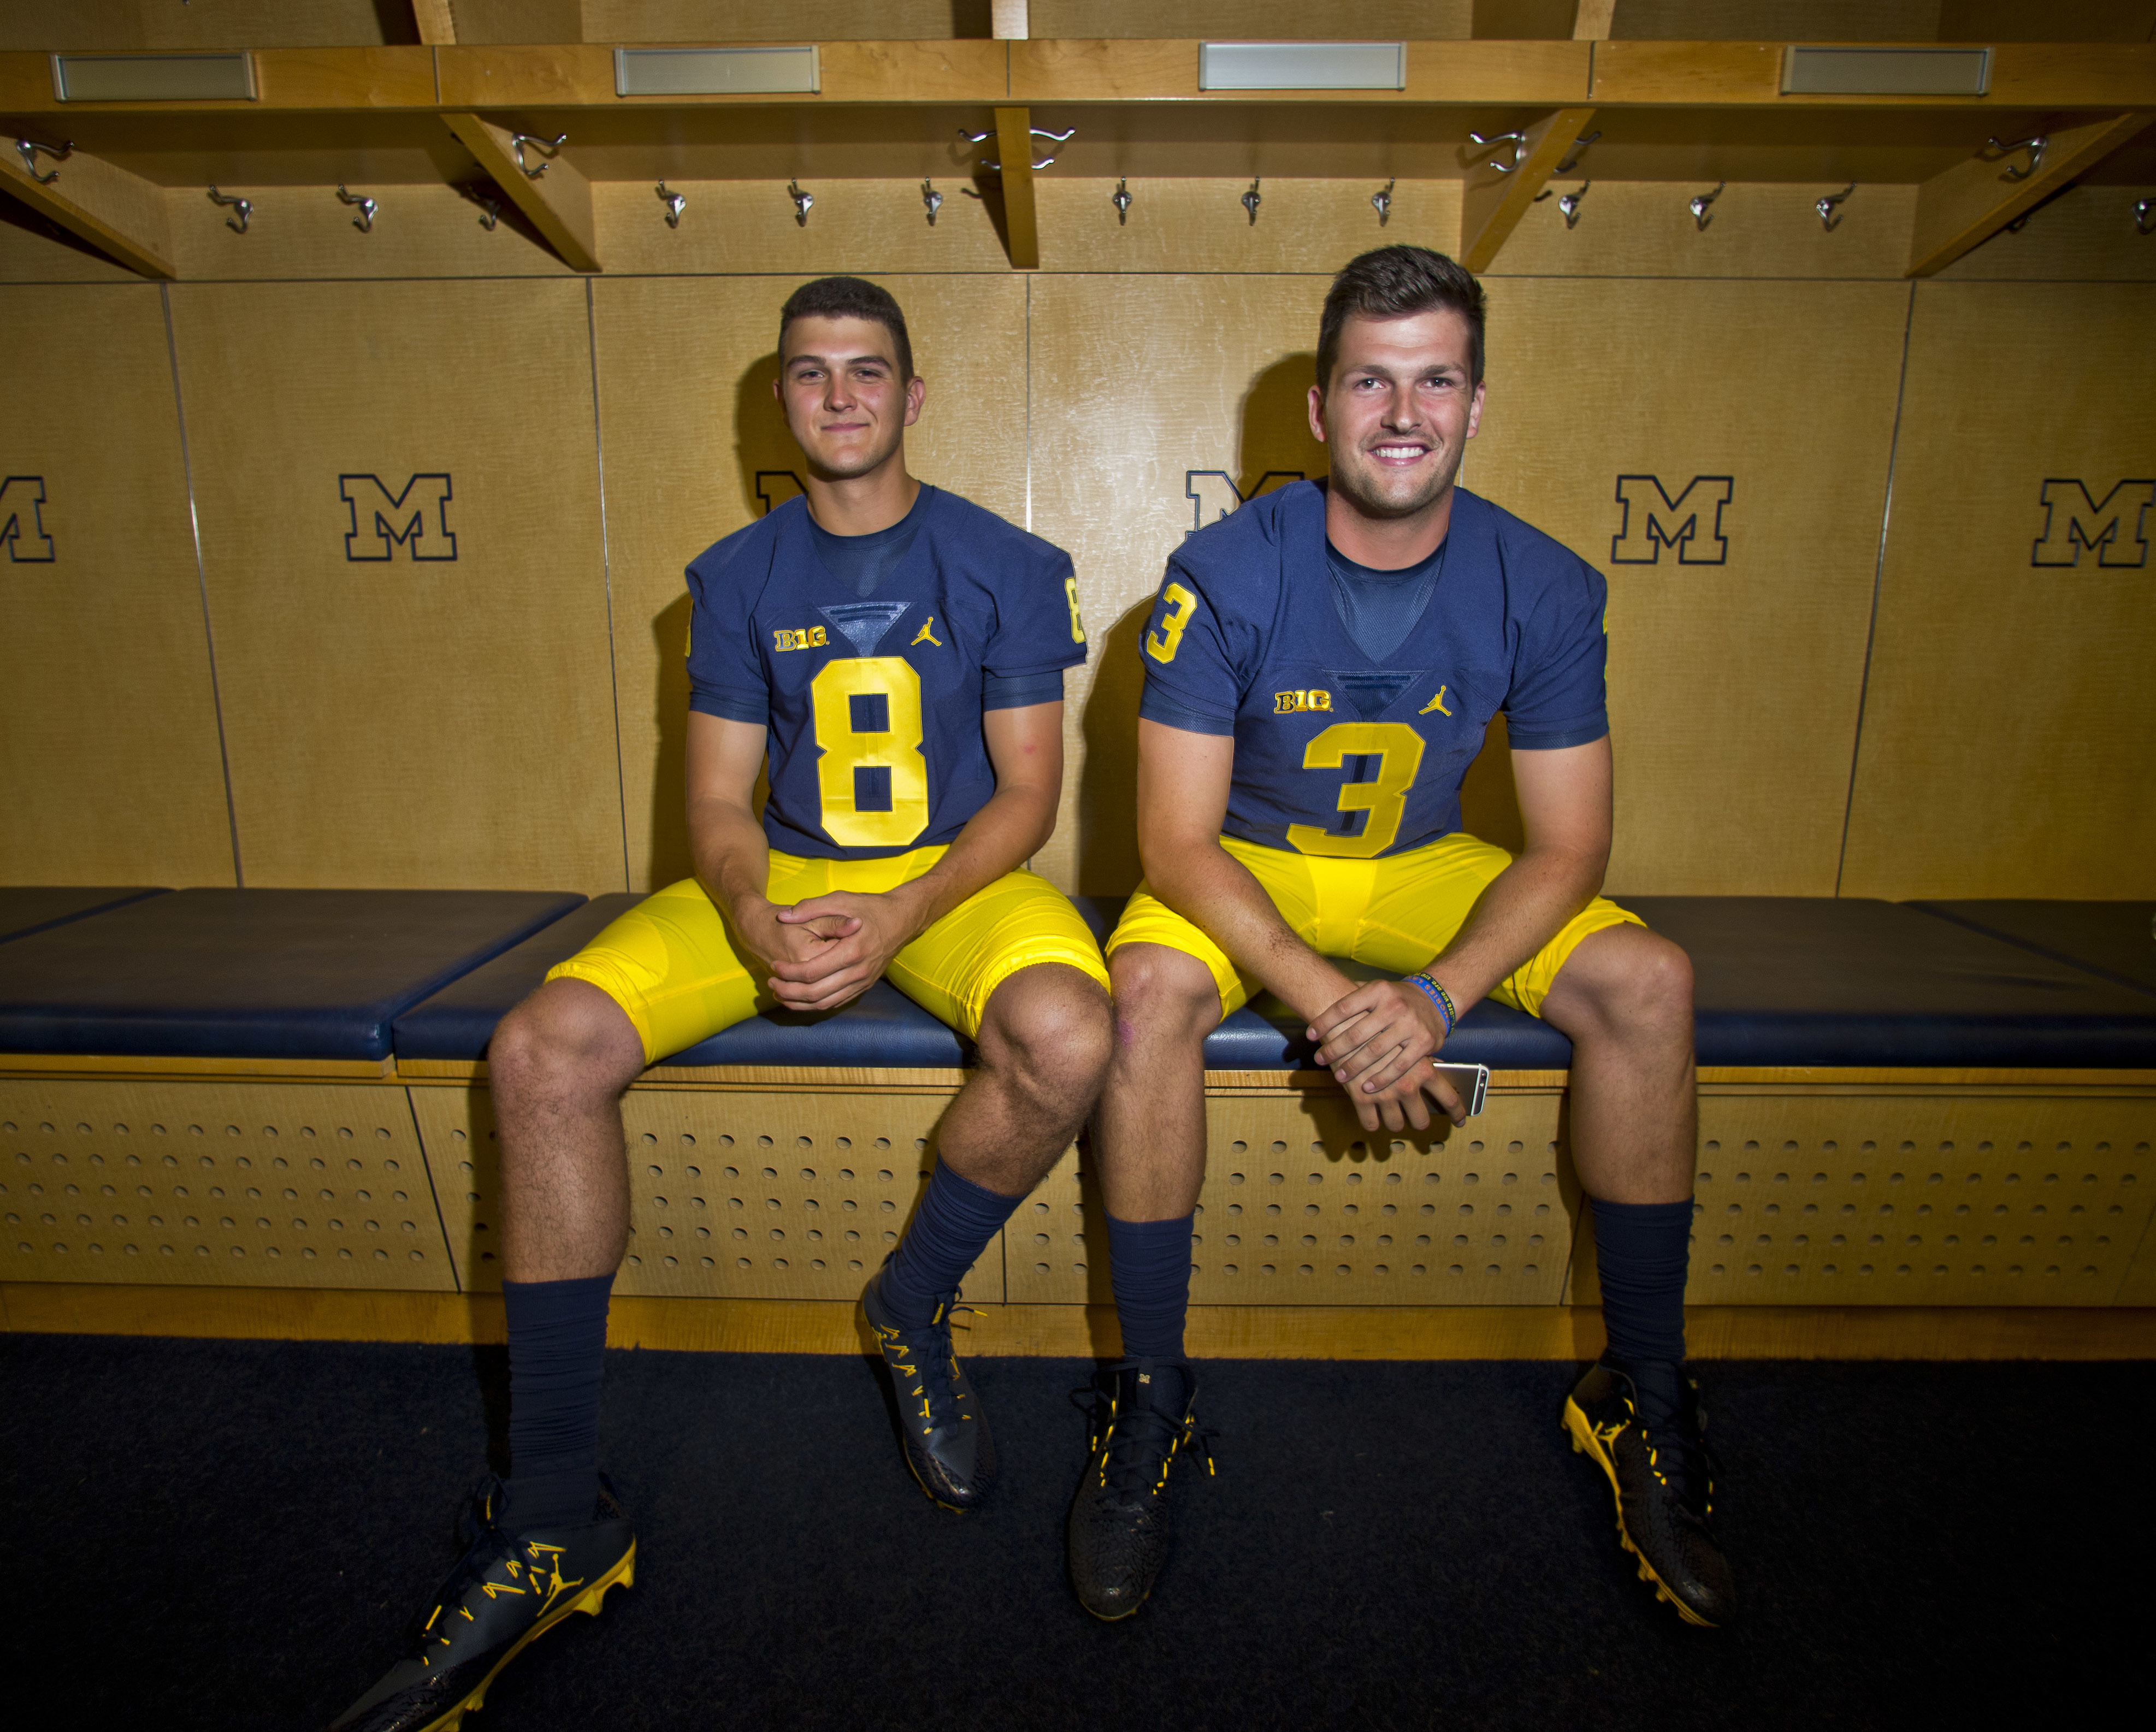 FILE - This Aug. 7, 2016 file photo shows Michigan quarterbacks John O'Korn (8) and Wilton Speight (3) sitting for a photo in the locker room during the NCAA college football team's preseason media day at Michigan Stadium in Ann Arbor, Mich. Jim Harbaugh